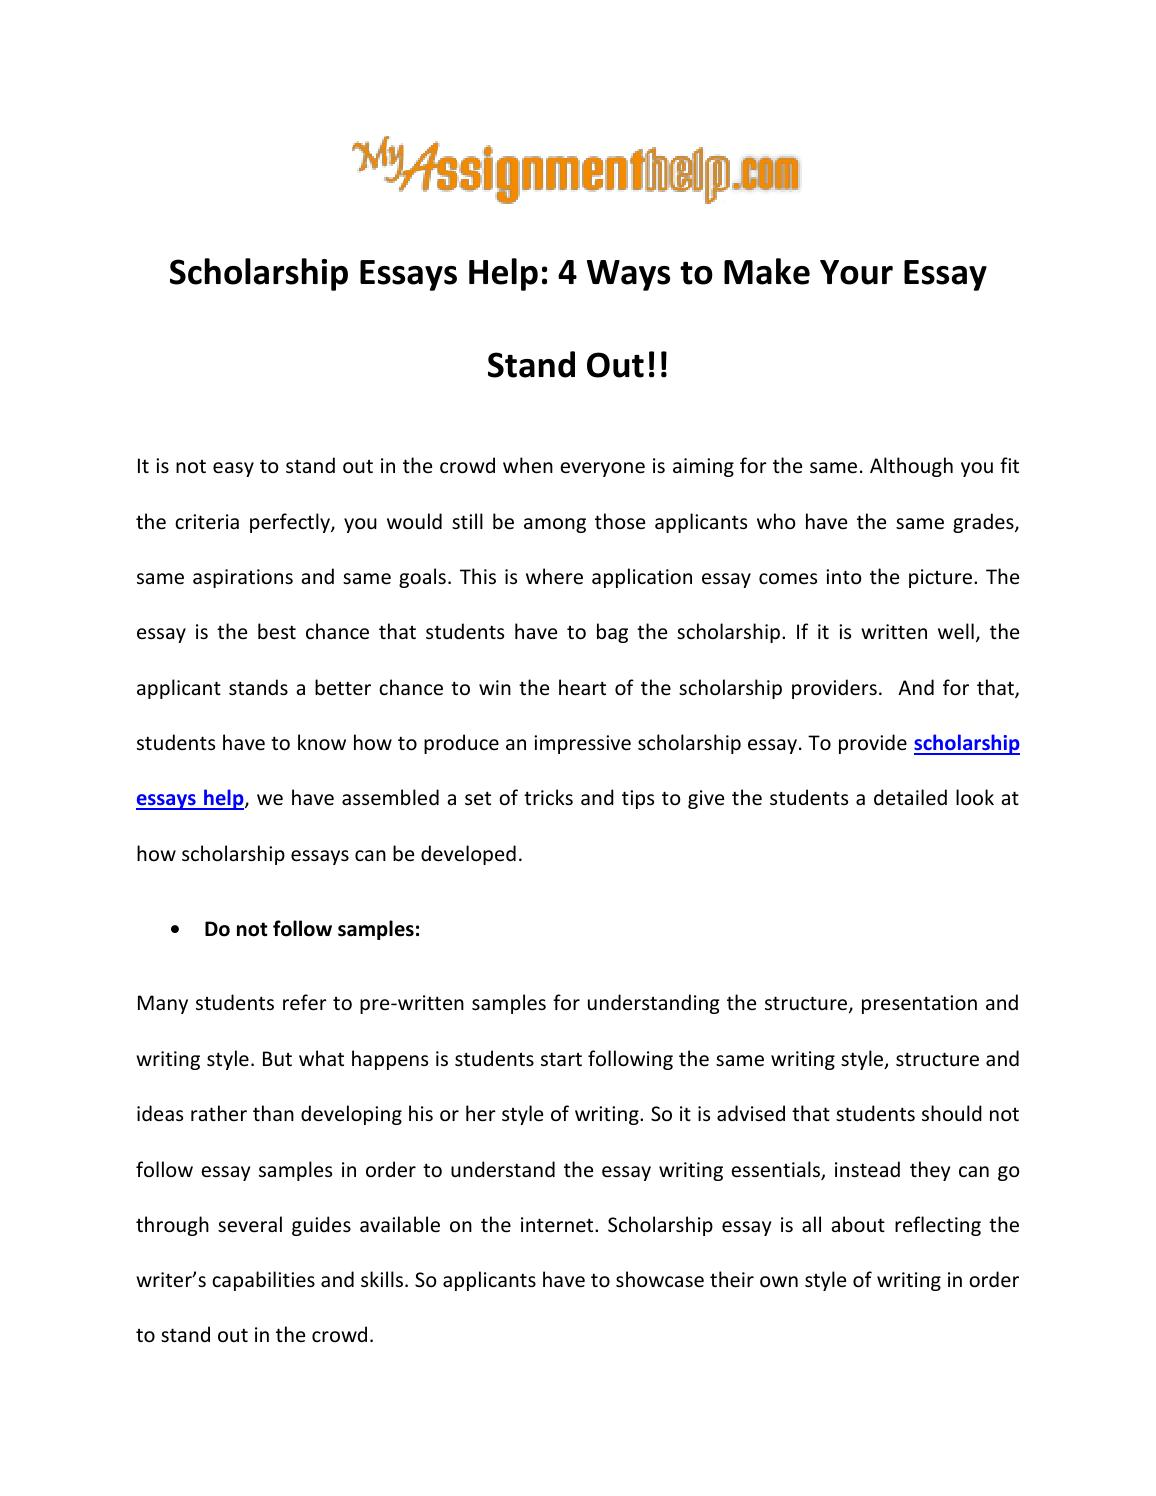 008 Scholarship Essays Help Ways To Make Your Essay Stand Out By Tips For Writing Winning P Effective Singular Gilman Psc Goldwater Full